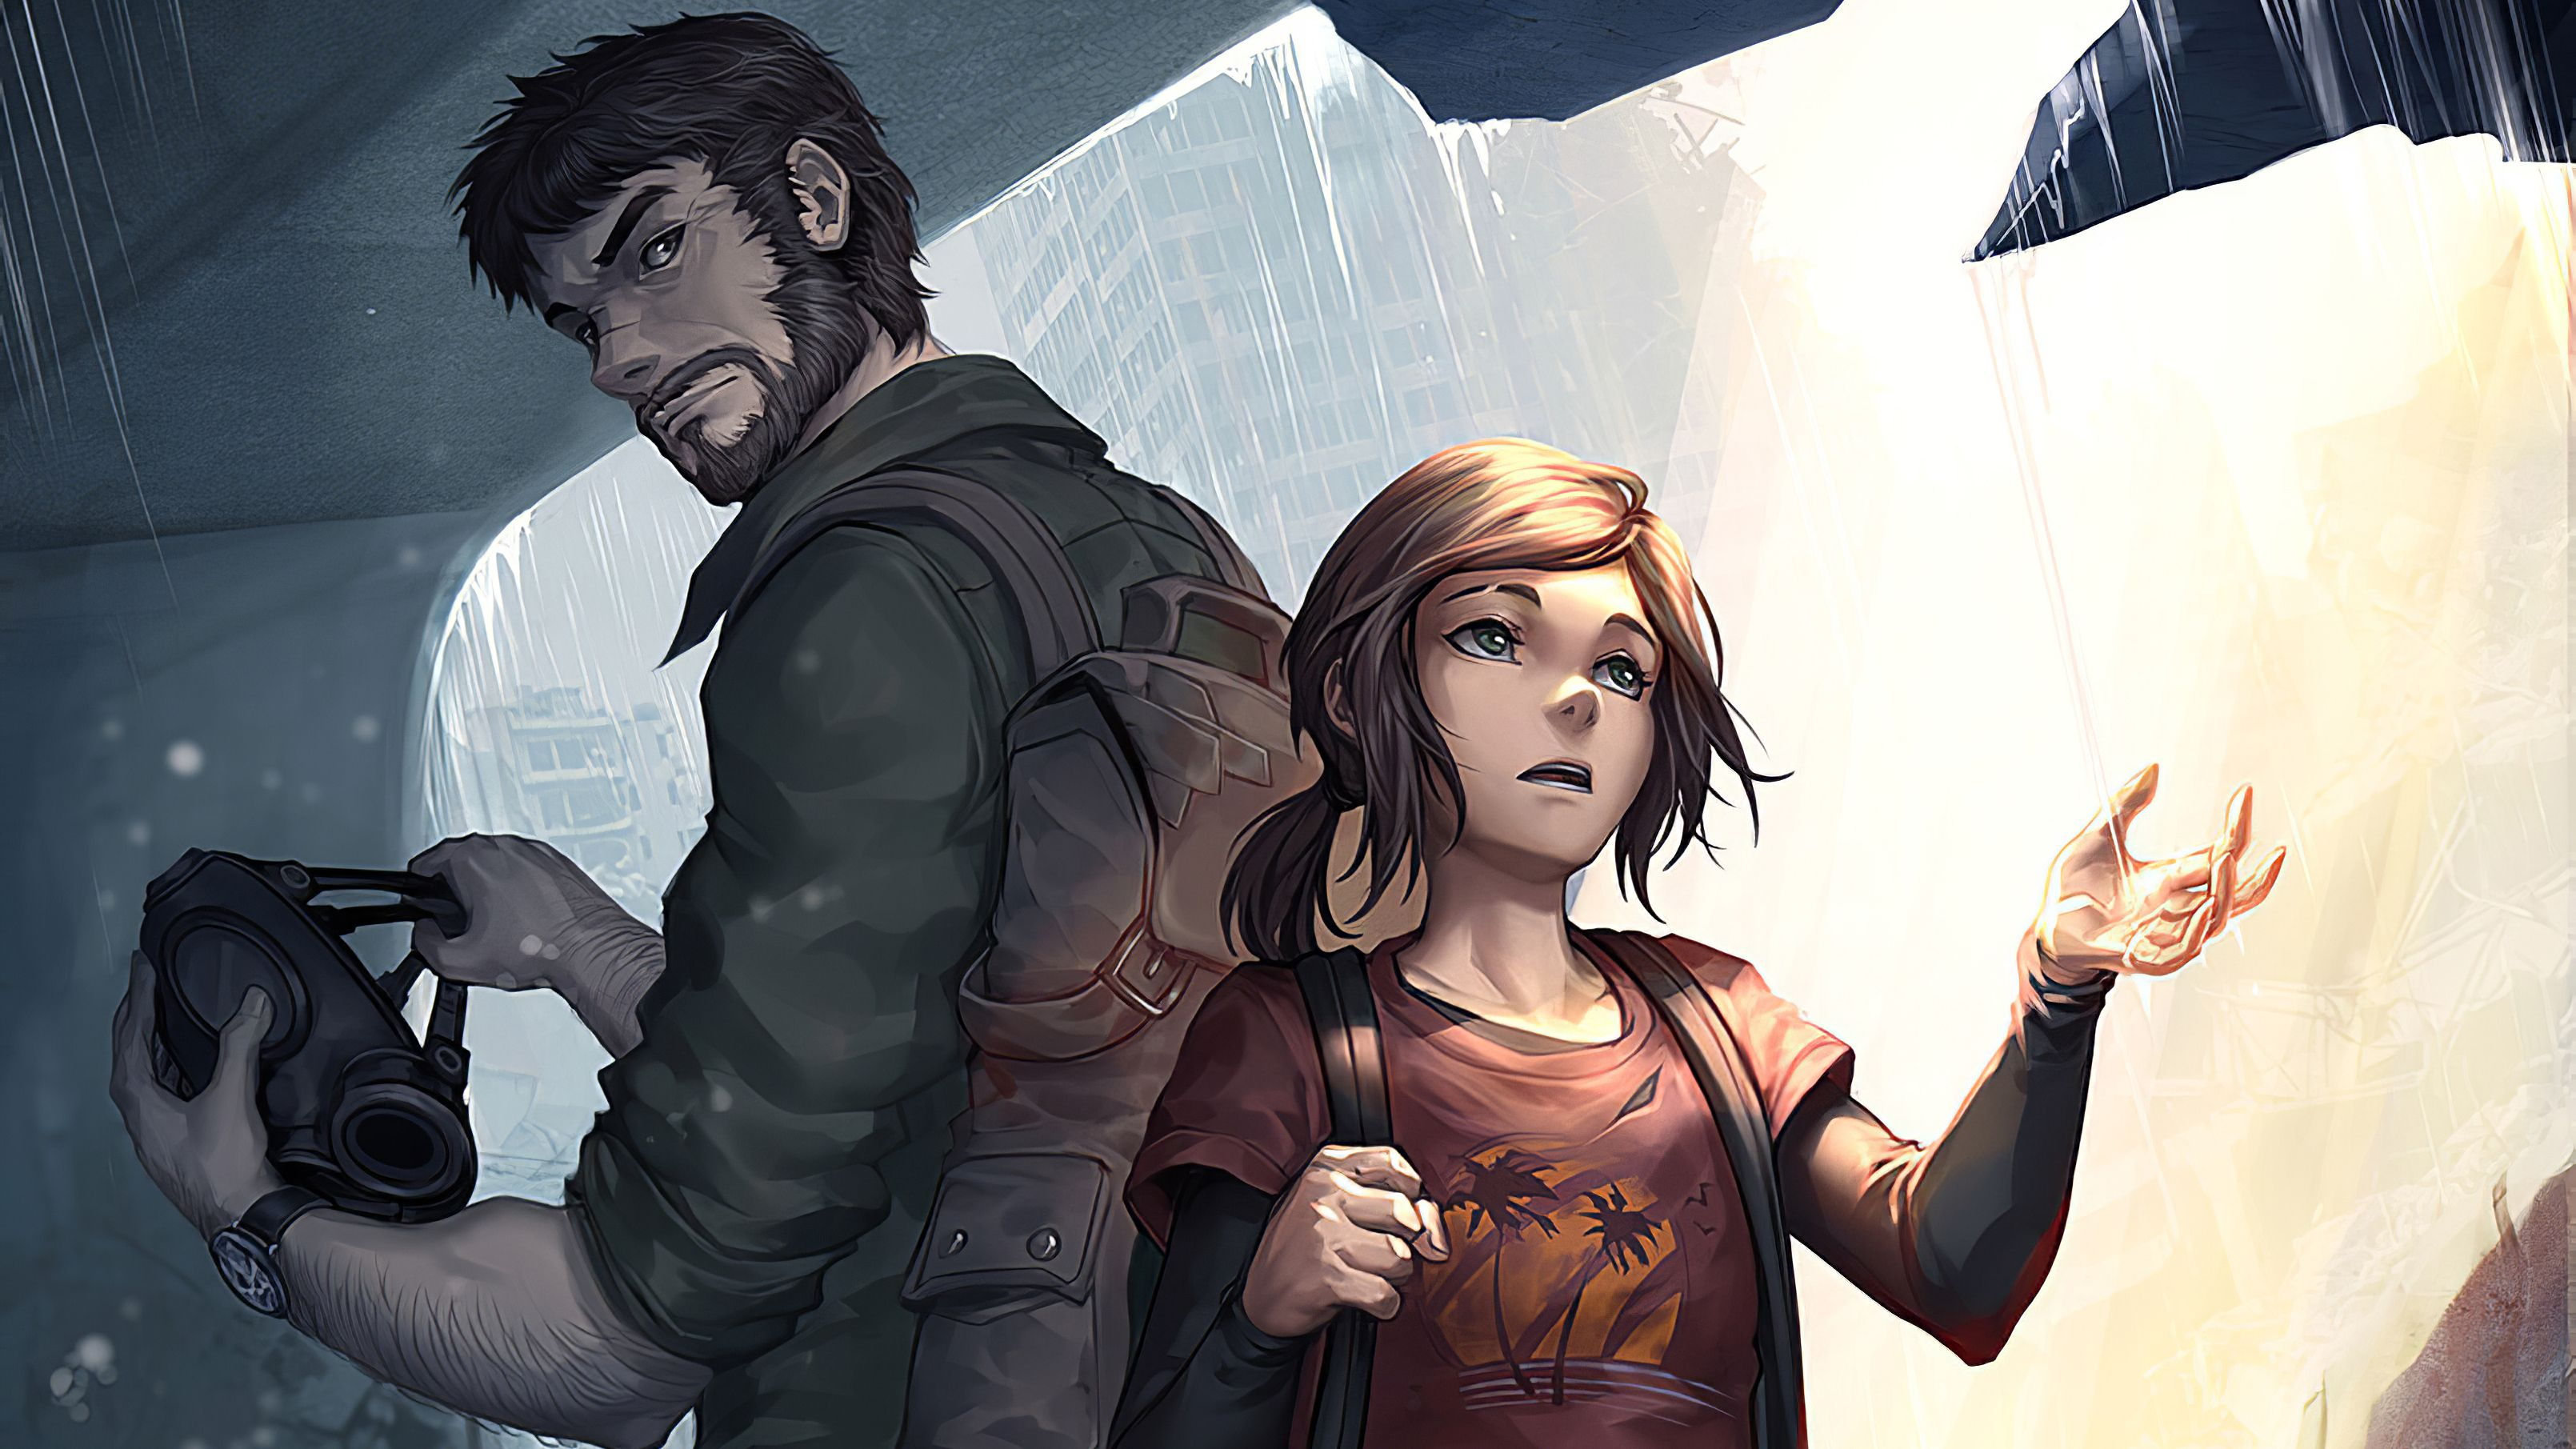 Fondo de pantalla de The Last of Us 3220x1811